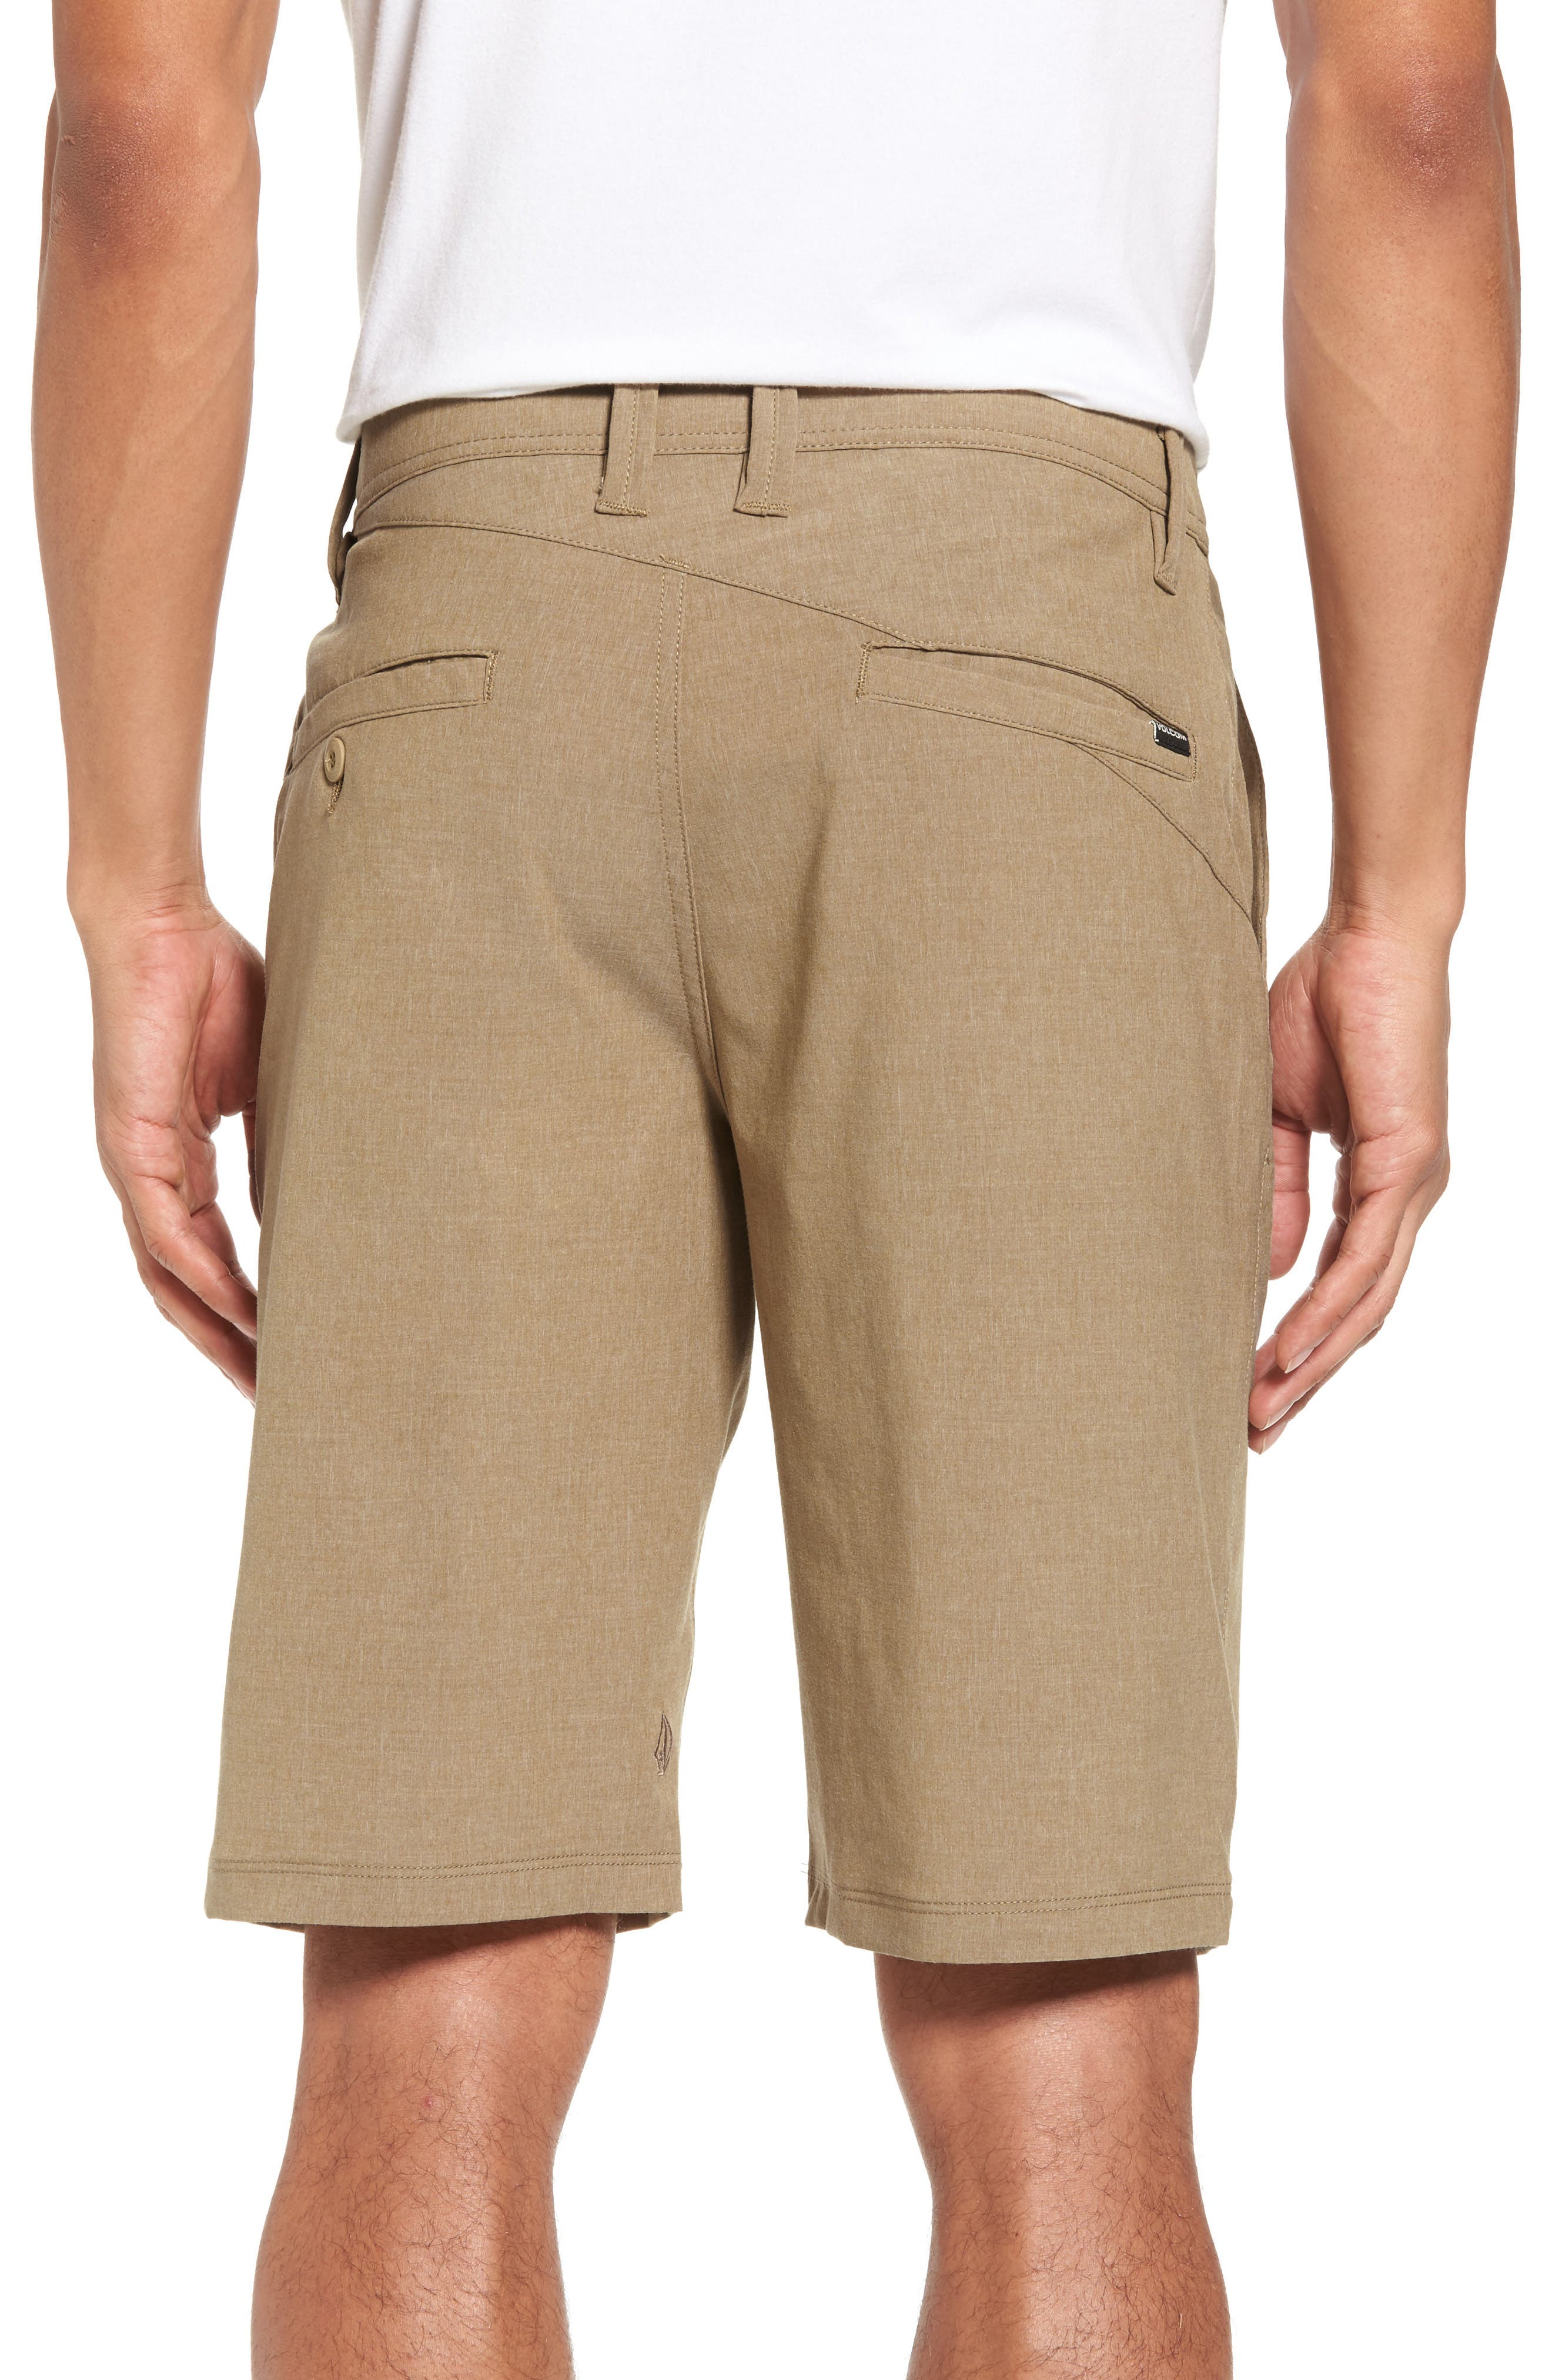 Hybrid Shorts,                             Alternate thumbnail 2, color,                             Beige